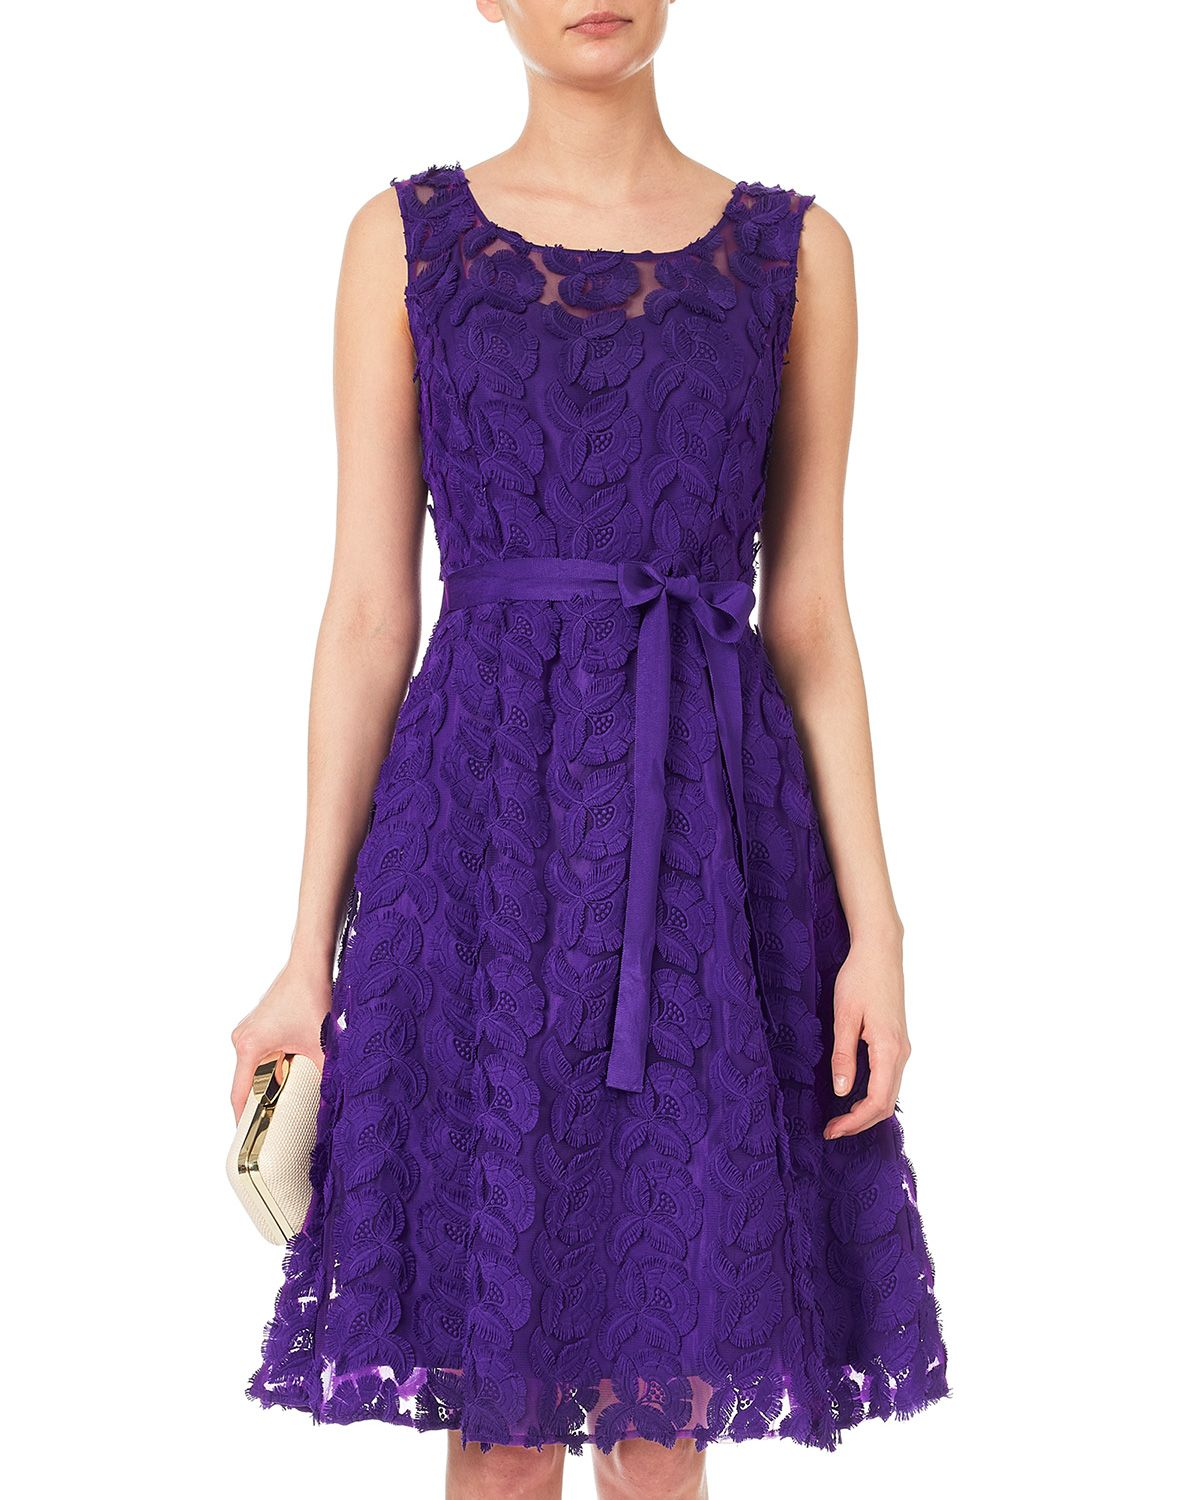 Dresses | Purple Cher Flower Dress | Phase Eight | Zakuska | Pinterest